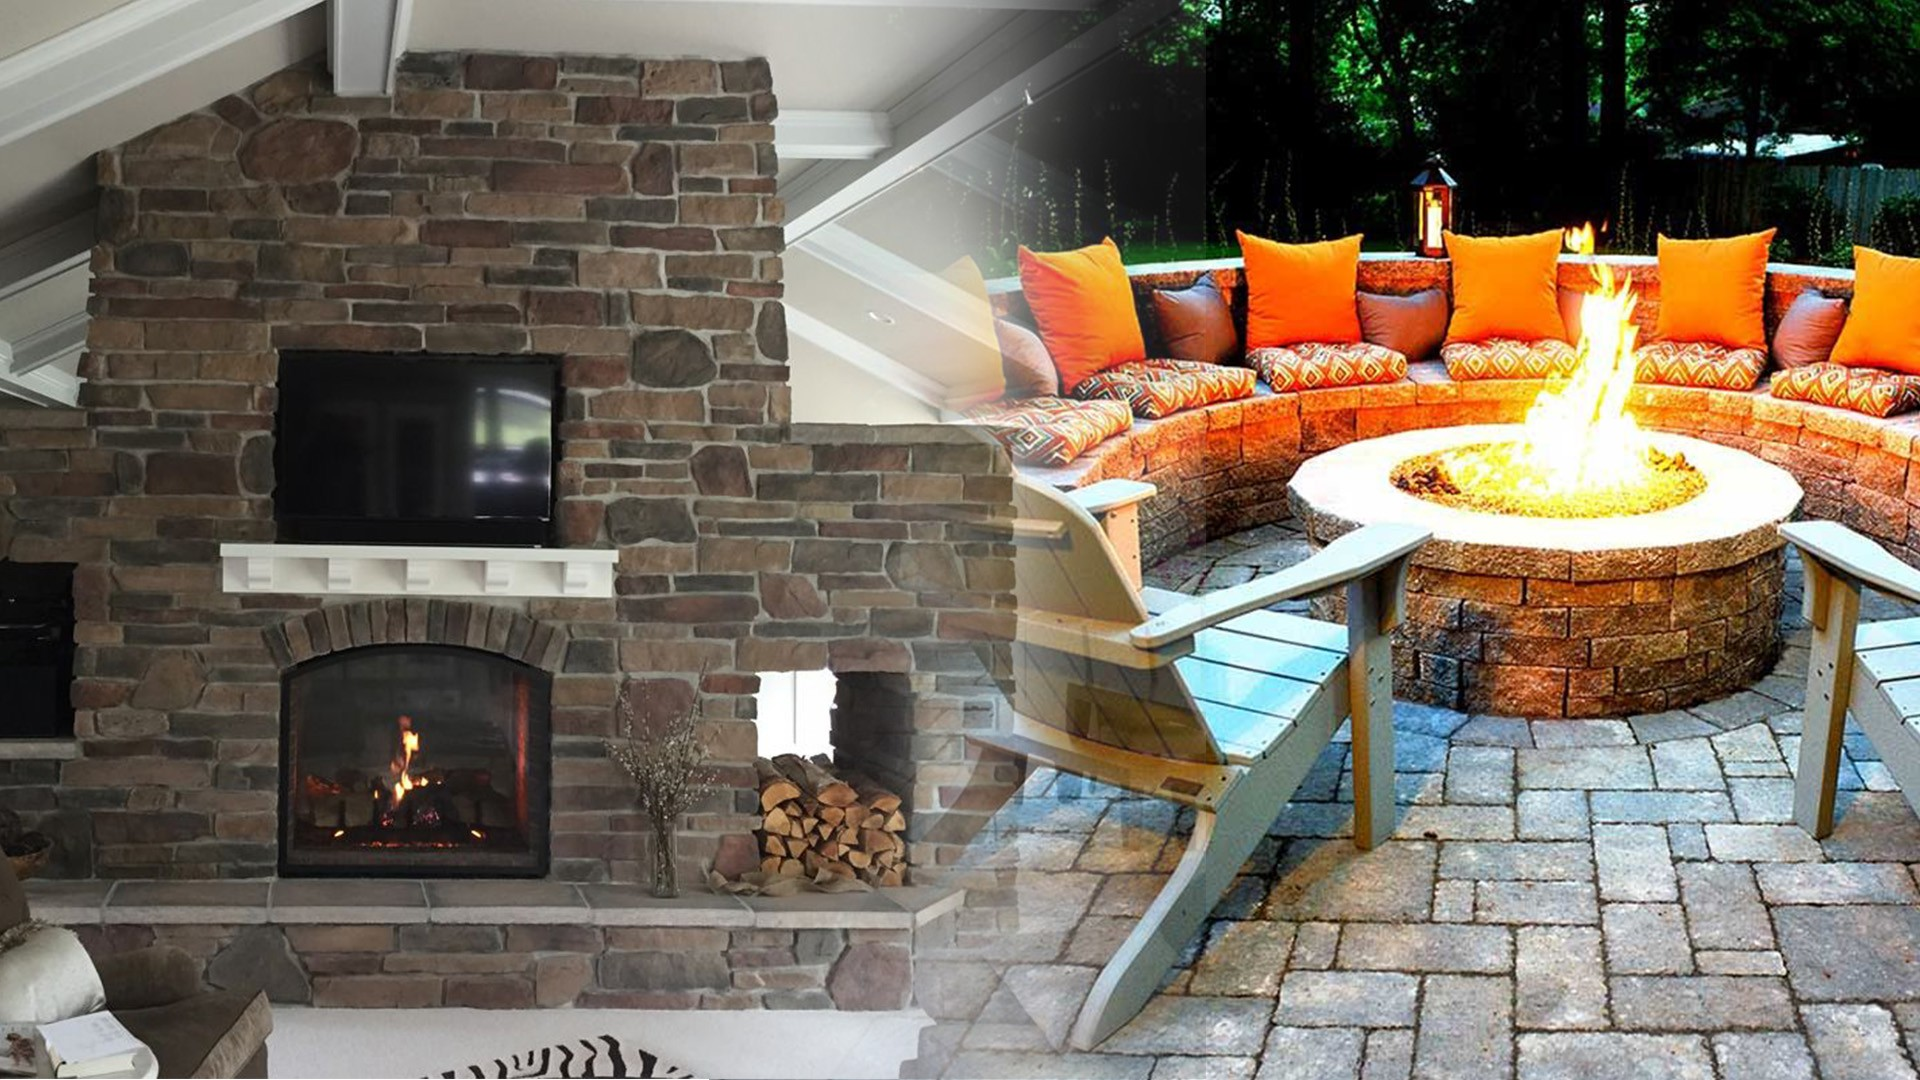 Outdoor Fireplaces & Fire Pits-Victoria TX Professional Landscapers & Outdoor Living Designs-We offer Landscape Design, Outdoor Patios & Pergolas, Outdoor Living Spaces, Stonescapes, Residential & Commercial Landscaping, Irrigation Installation & Repairs, Drainage Systems, Landscape Lighting, Outdoor Living Spaces, Tree Service, Lawn Service, and more.